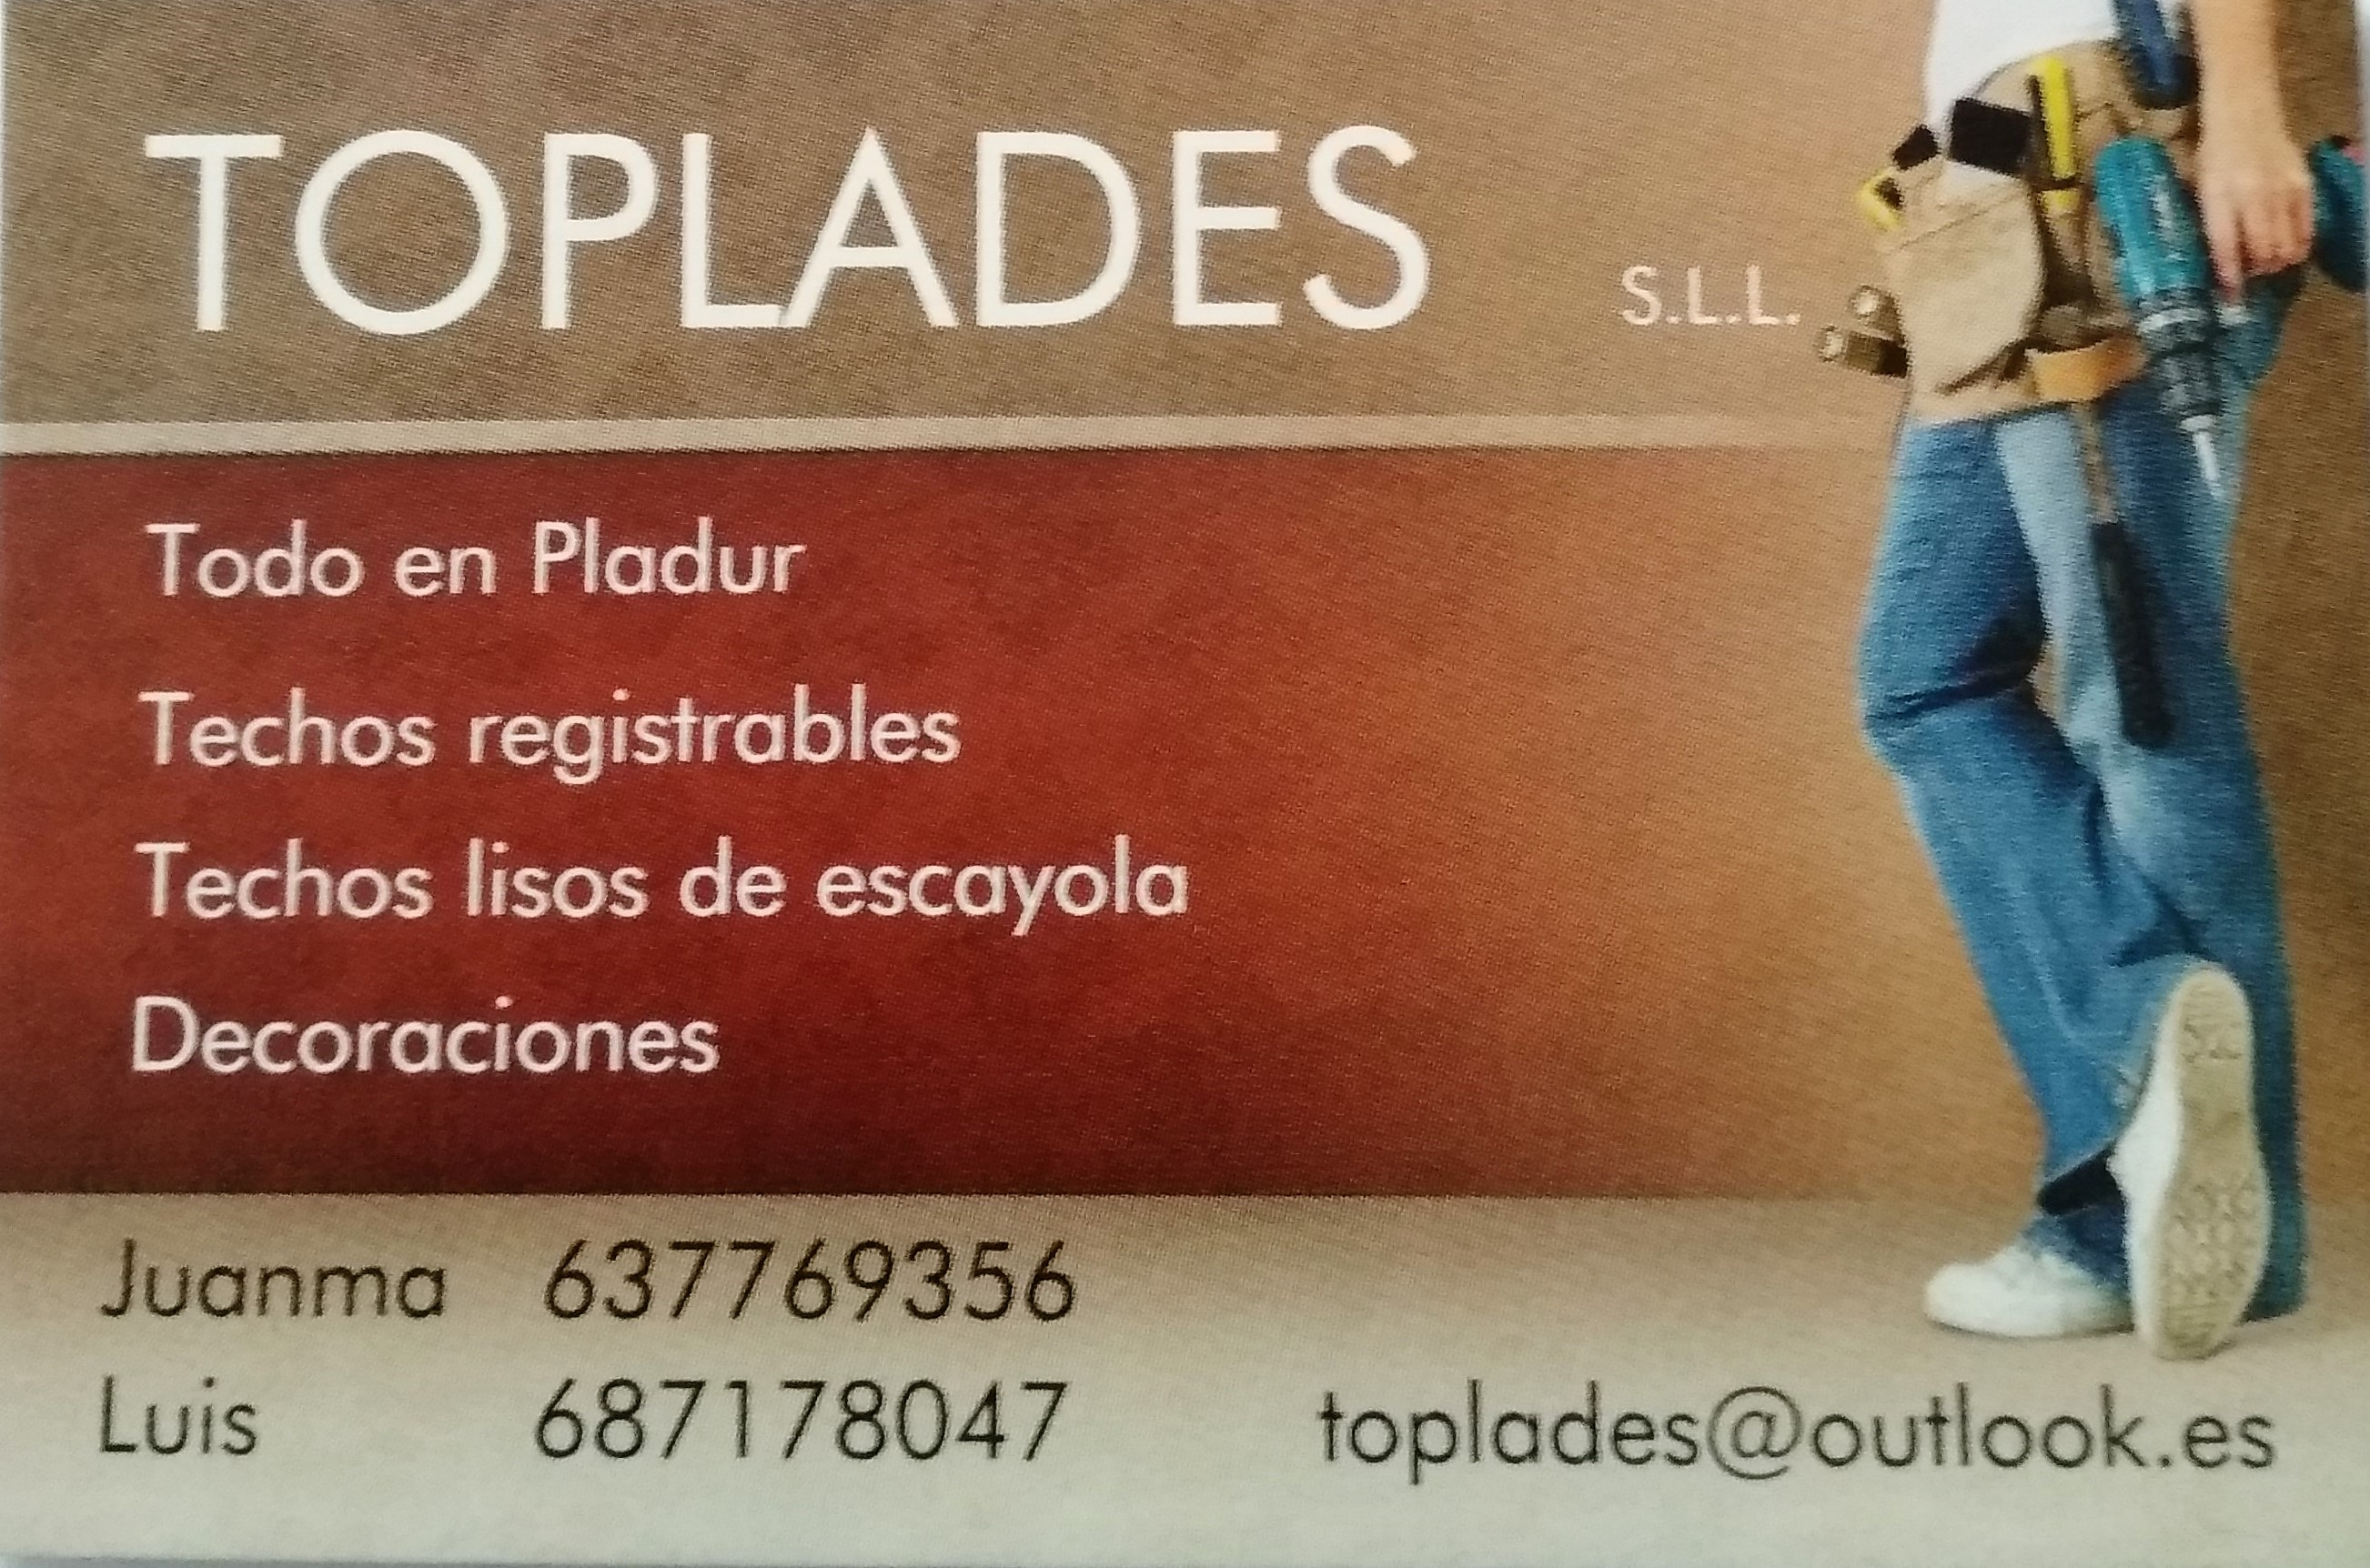 Toplades